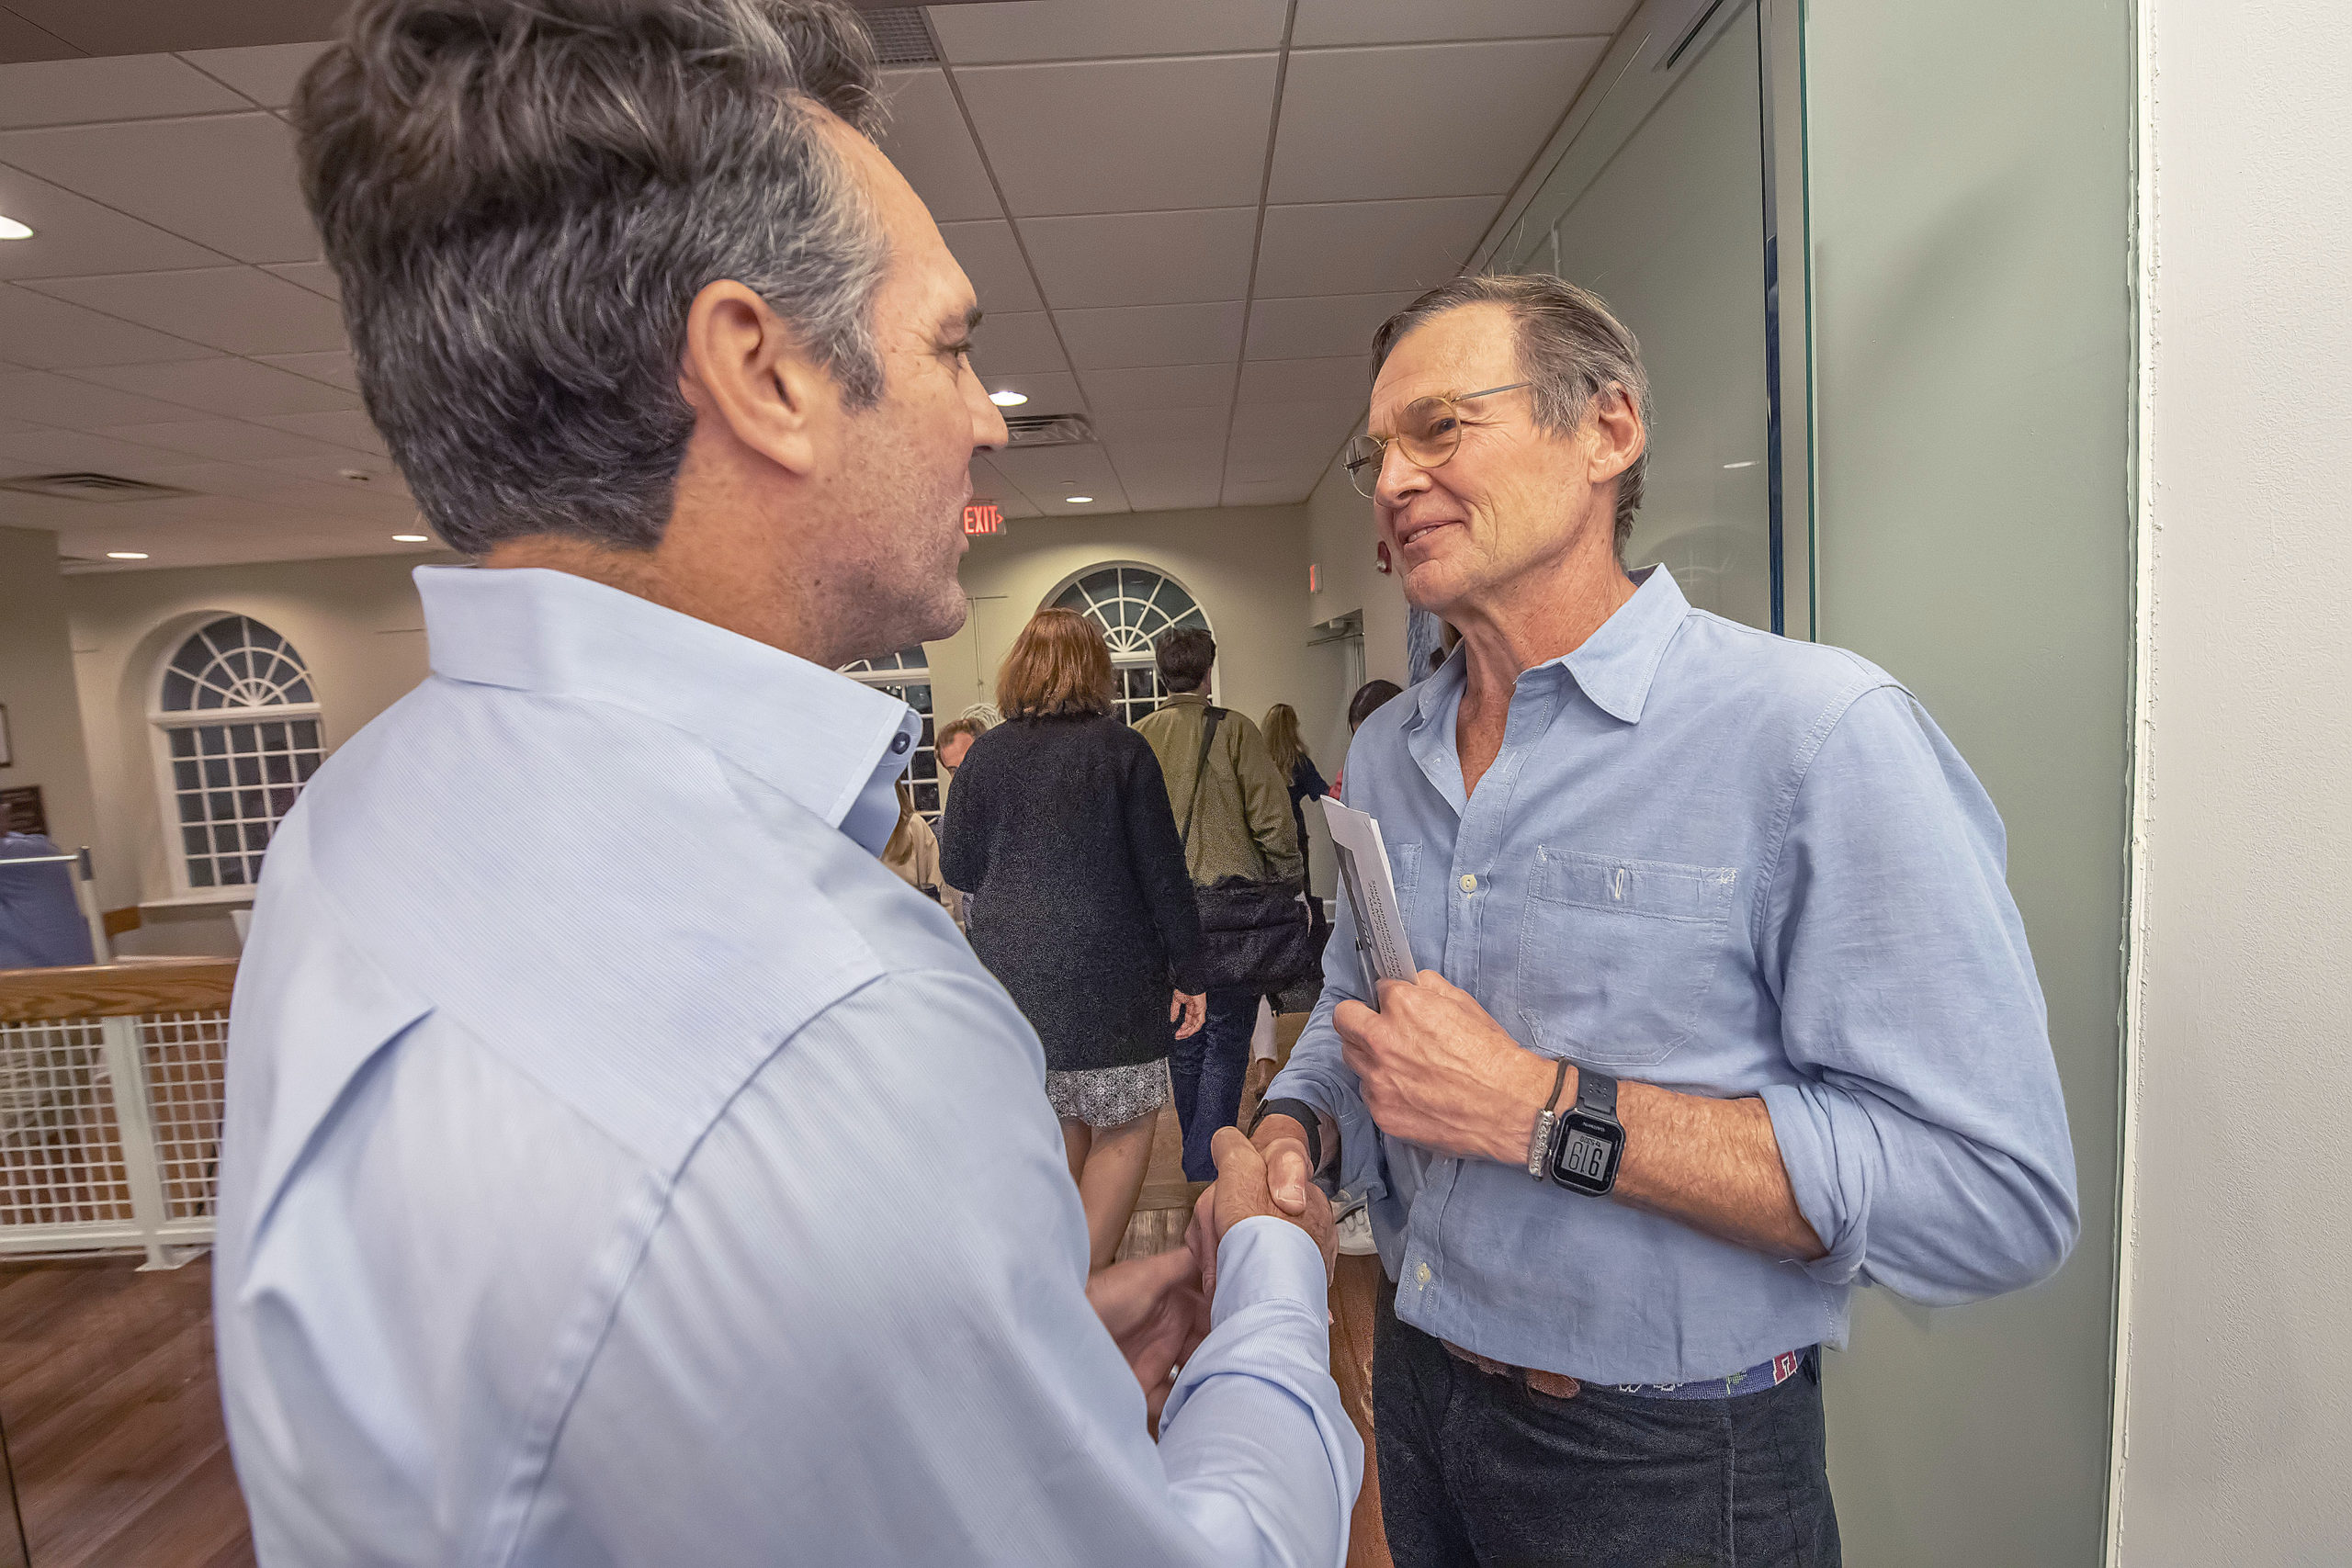 Mark Parash congratulates opponent Roy Stevenson on his victory in the race for village board following the 2021 Southampton Village Mayoral election at the Southampton Cultural Center on Friday night. MICHAEL HELLER